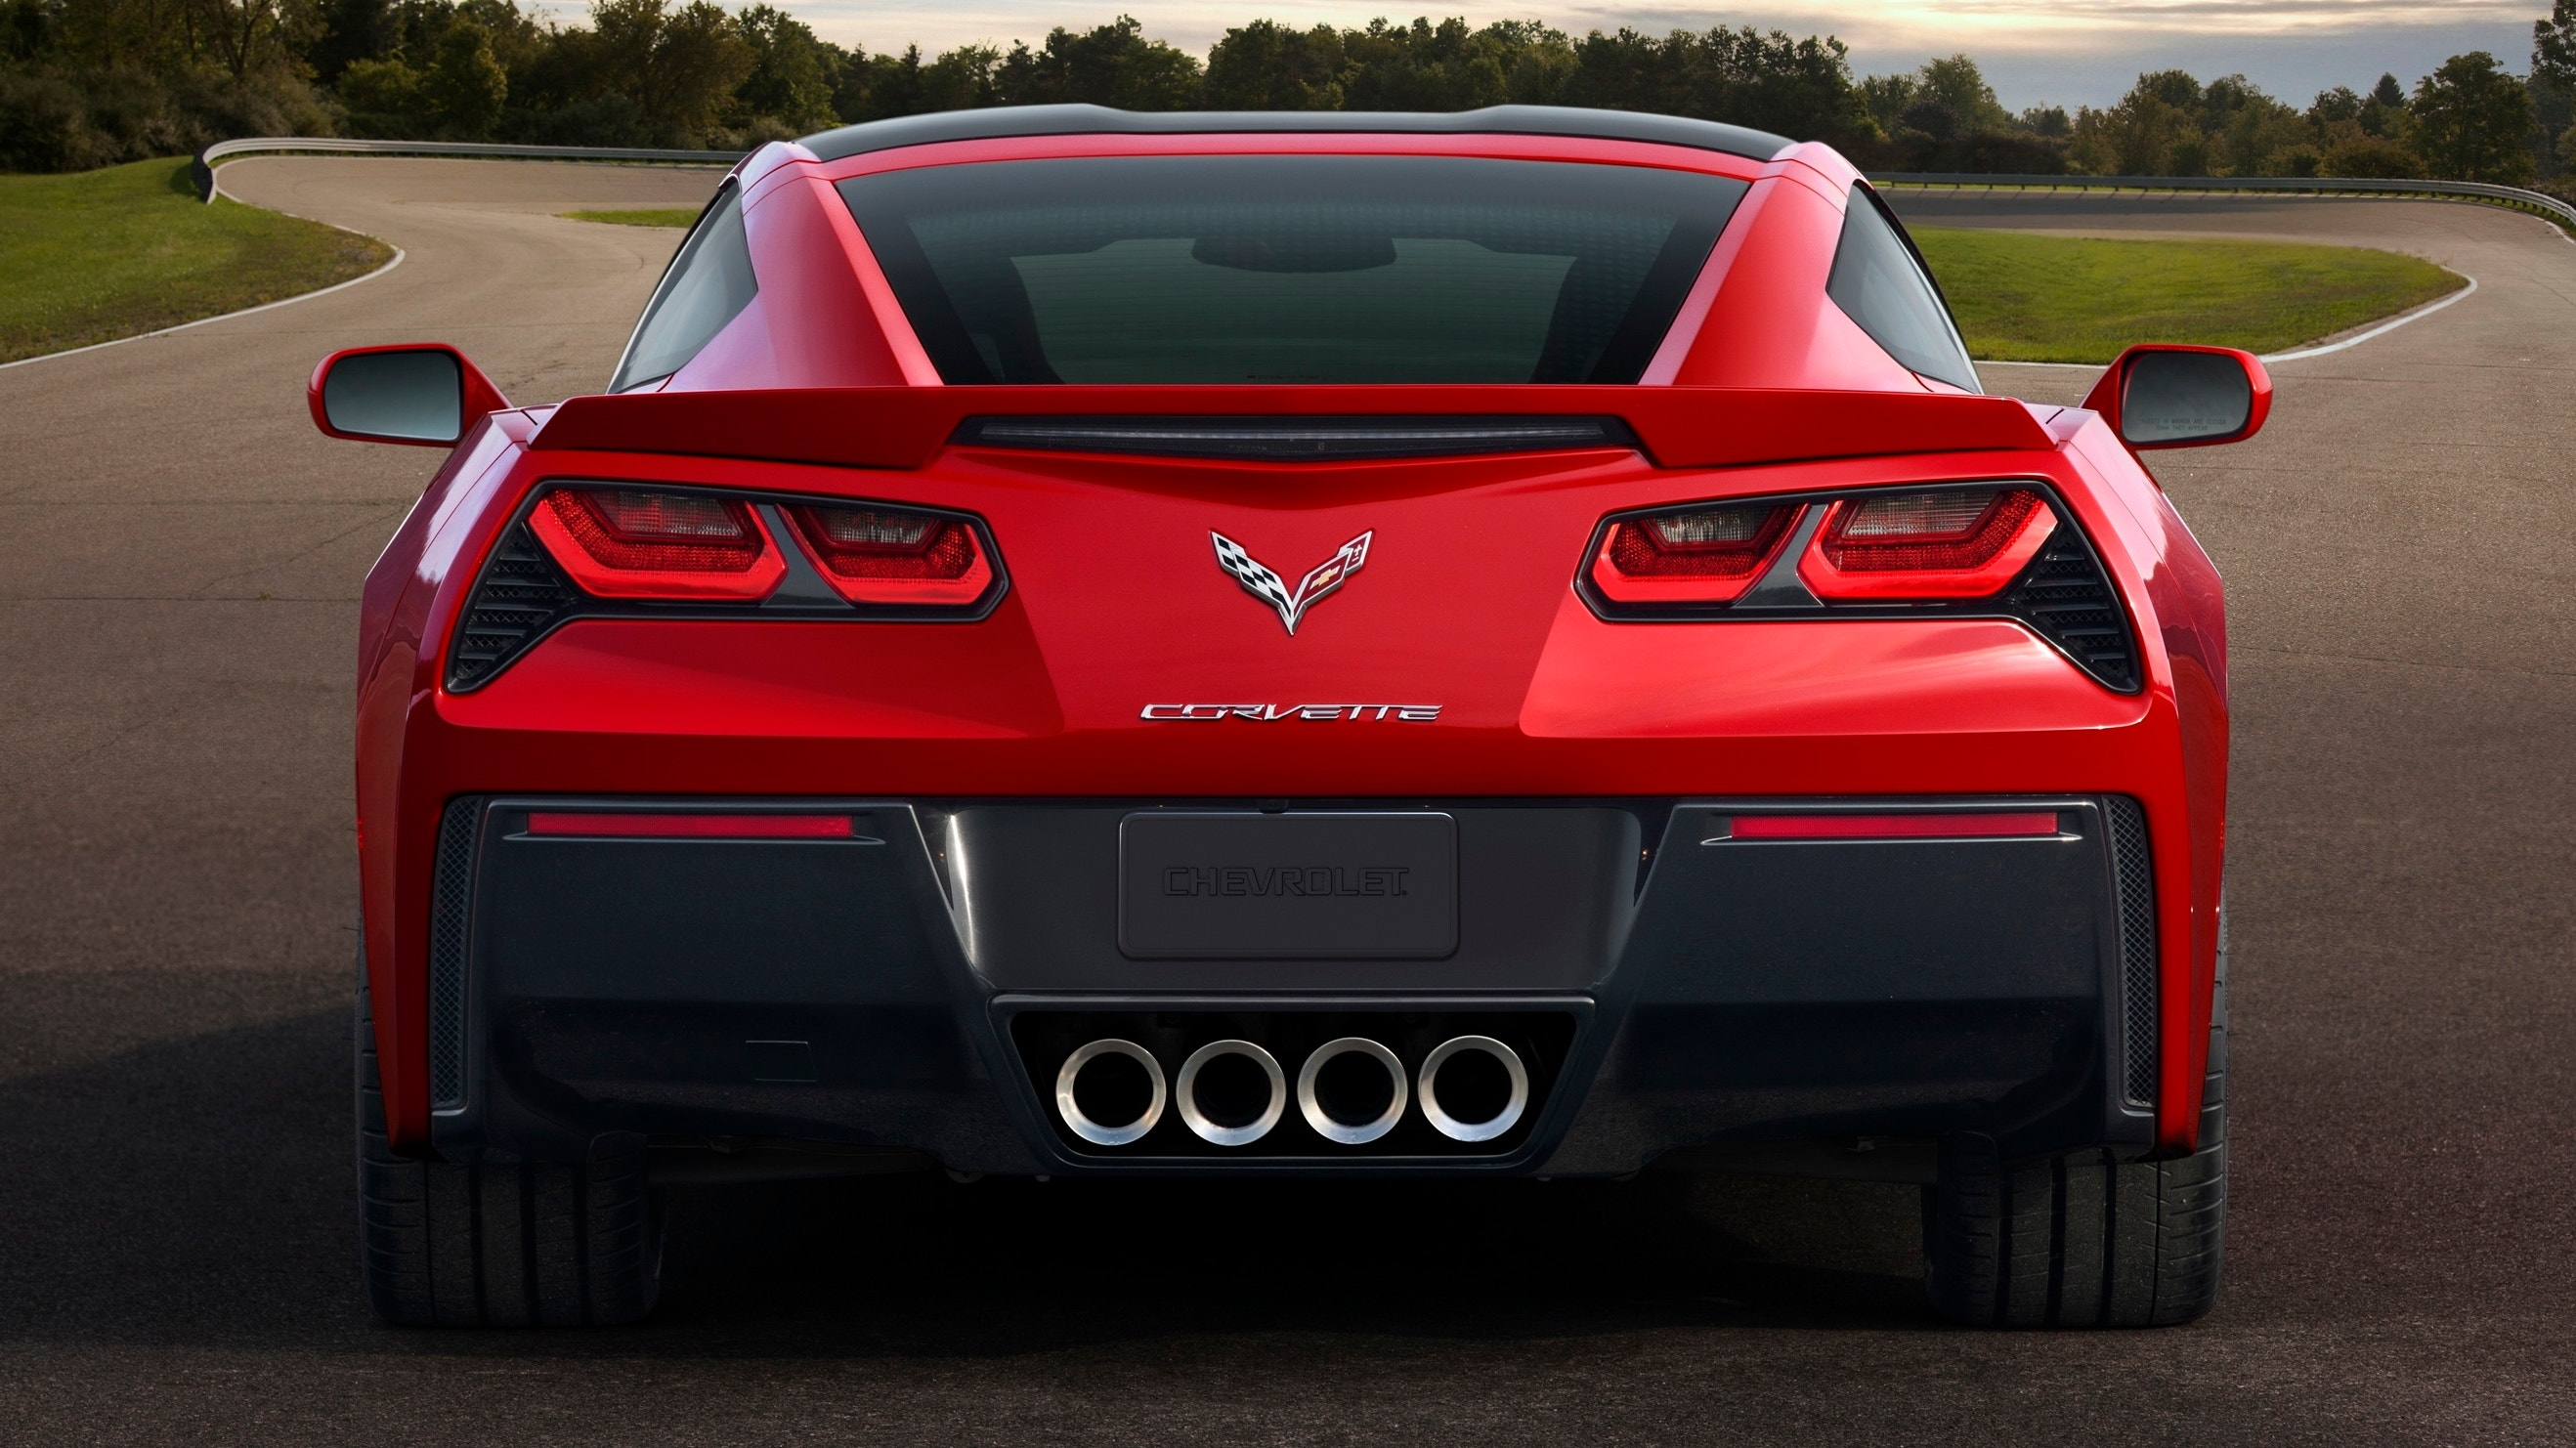 6 2 Liter Small Block V8 Featuring Direct Injection And Variable Valve Timing That Make It The Most Ful Base Engine Ever Offered In A Corvette